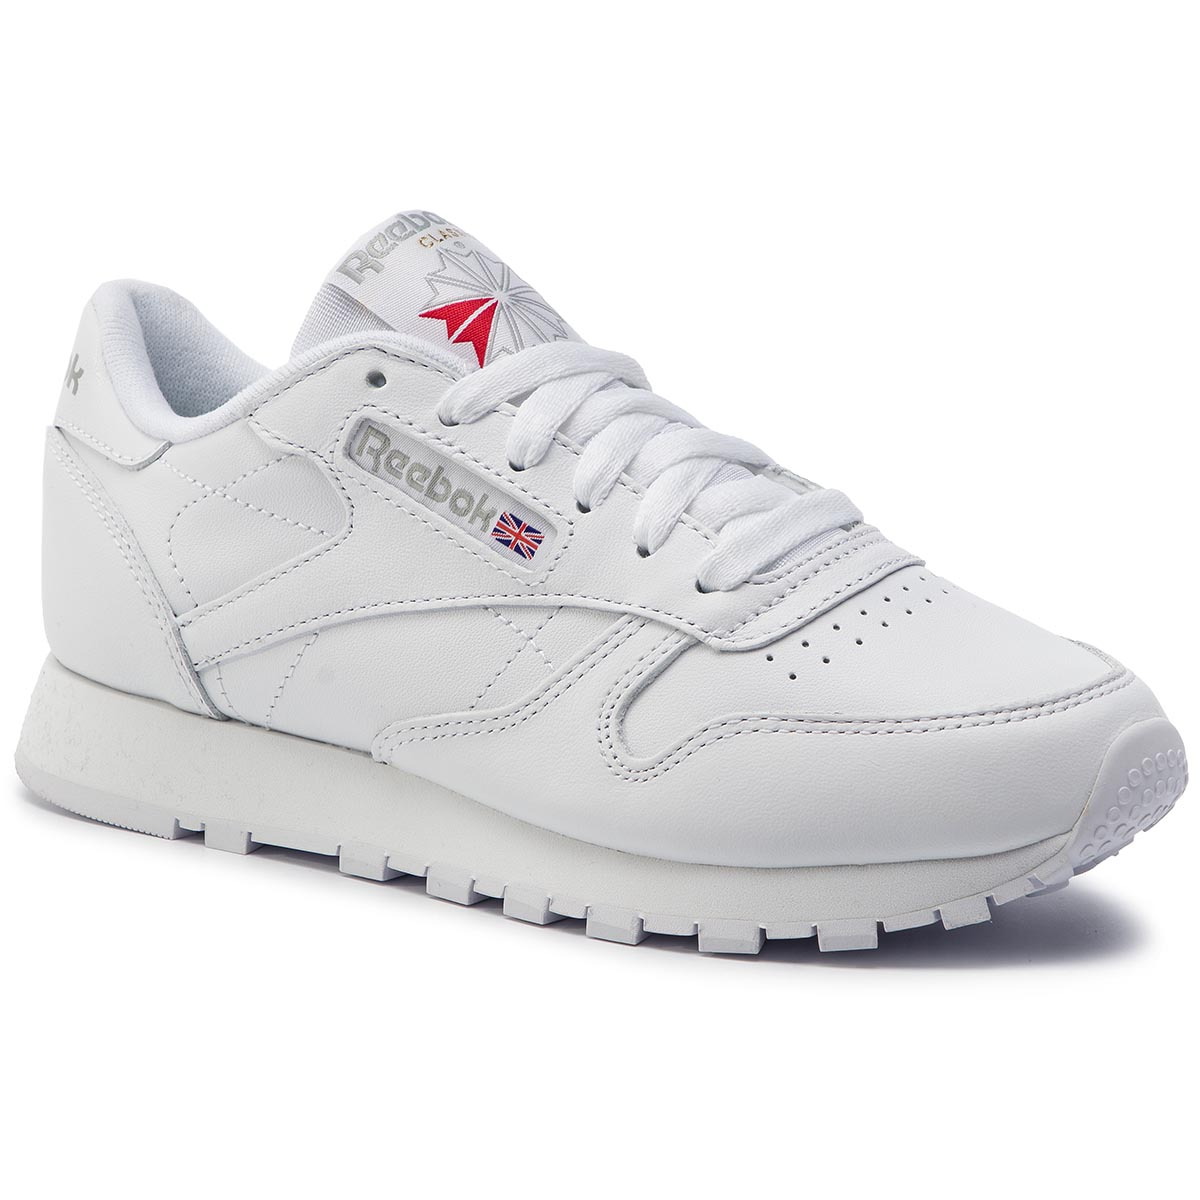 2bed524f Shoes Reebok - Classic Leather 50151 White - Casual - Low shoes ...